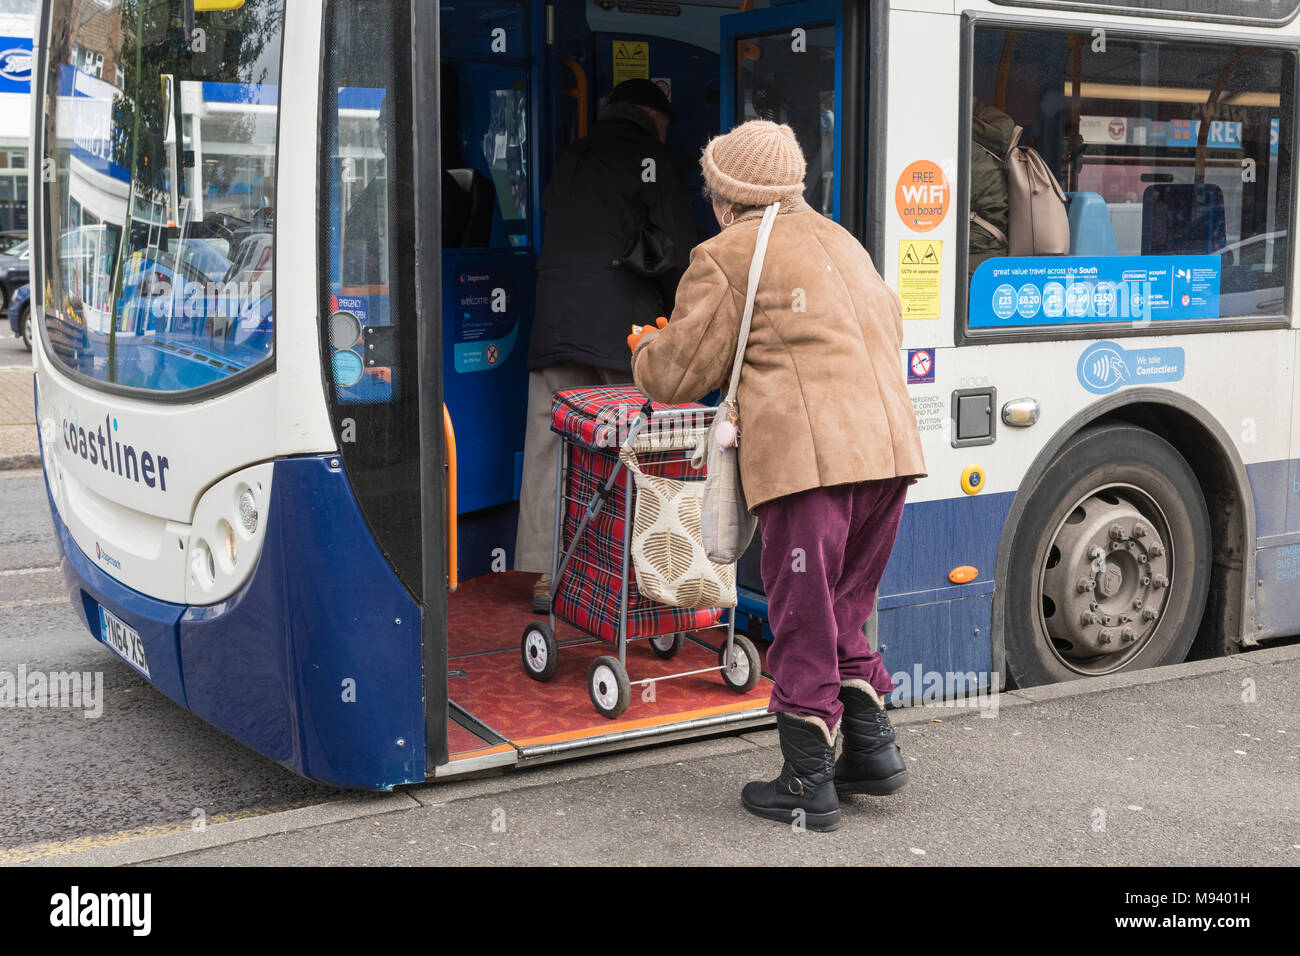 Senior woman boarding a bus with a wheeled shopping trolley in England, UK. - Stock Image